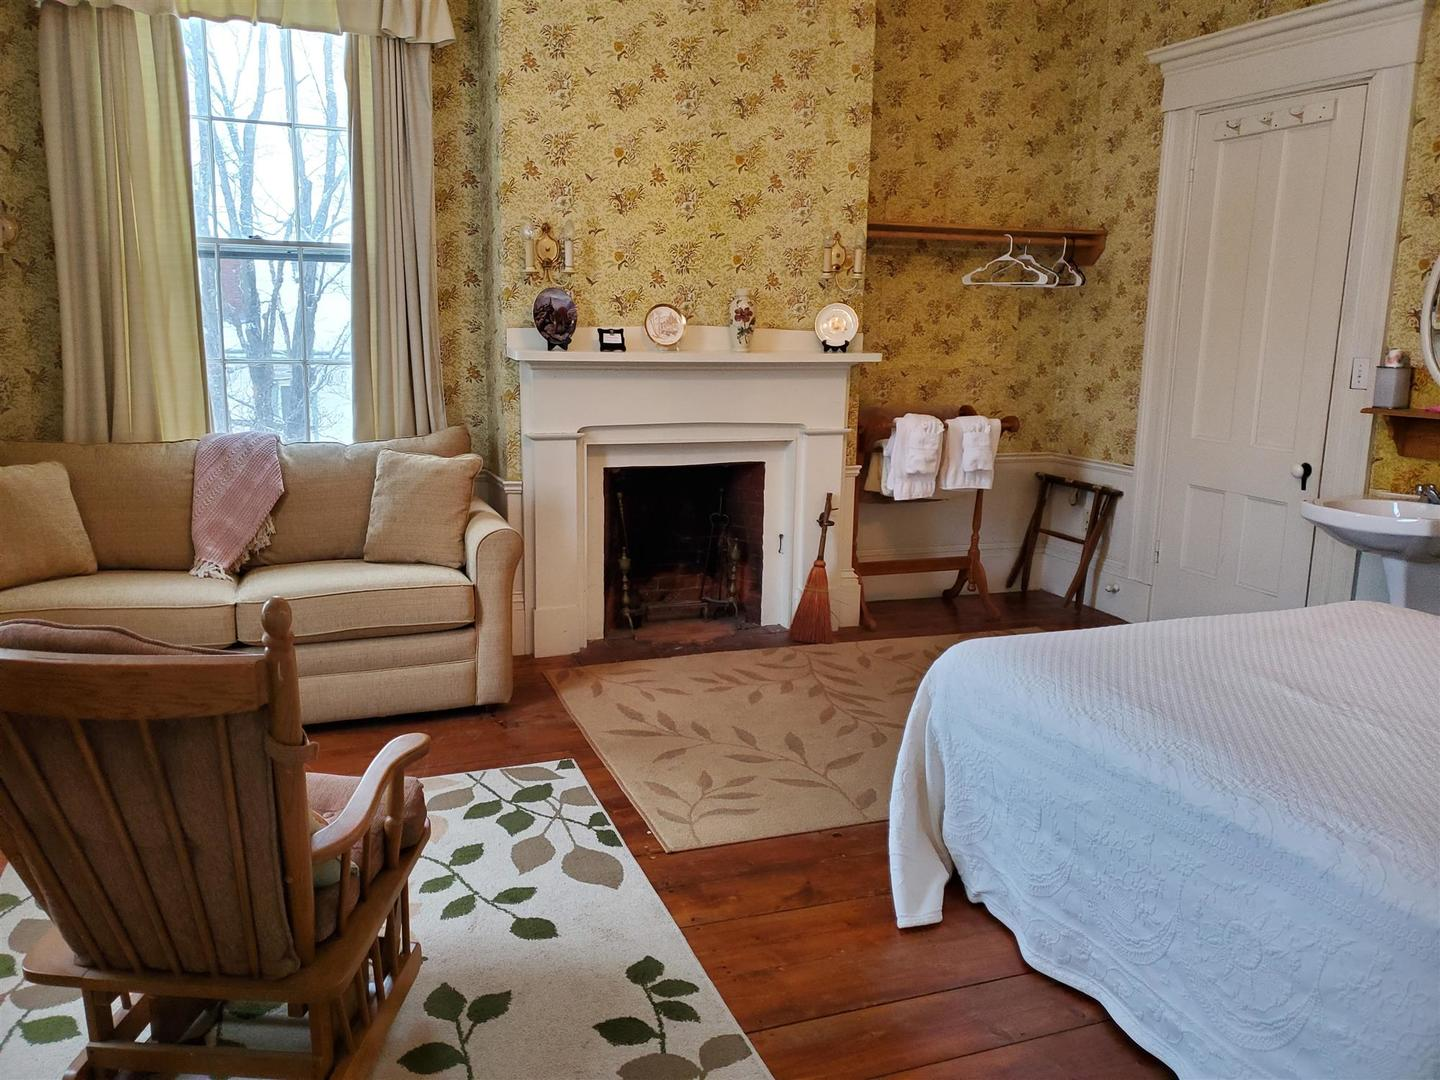 A living room with a bed and a fireplace at The Jeremiah Mason House Bed and Breakfast.